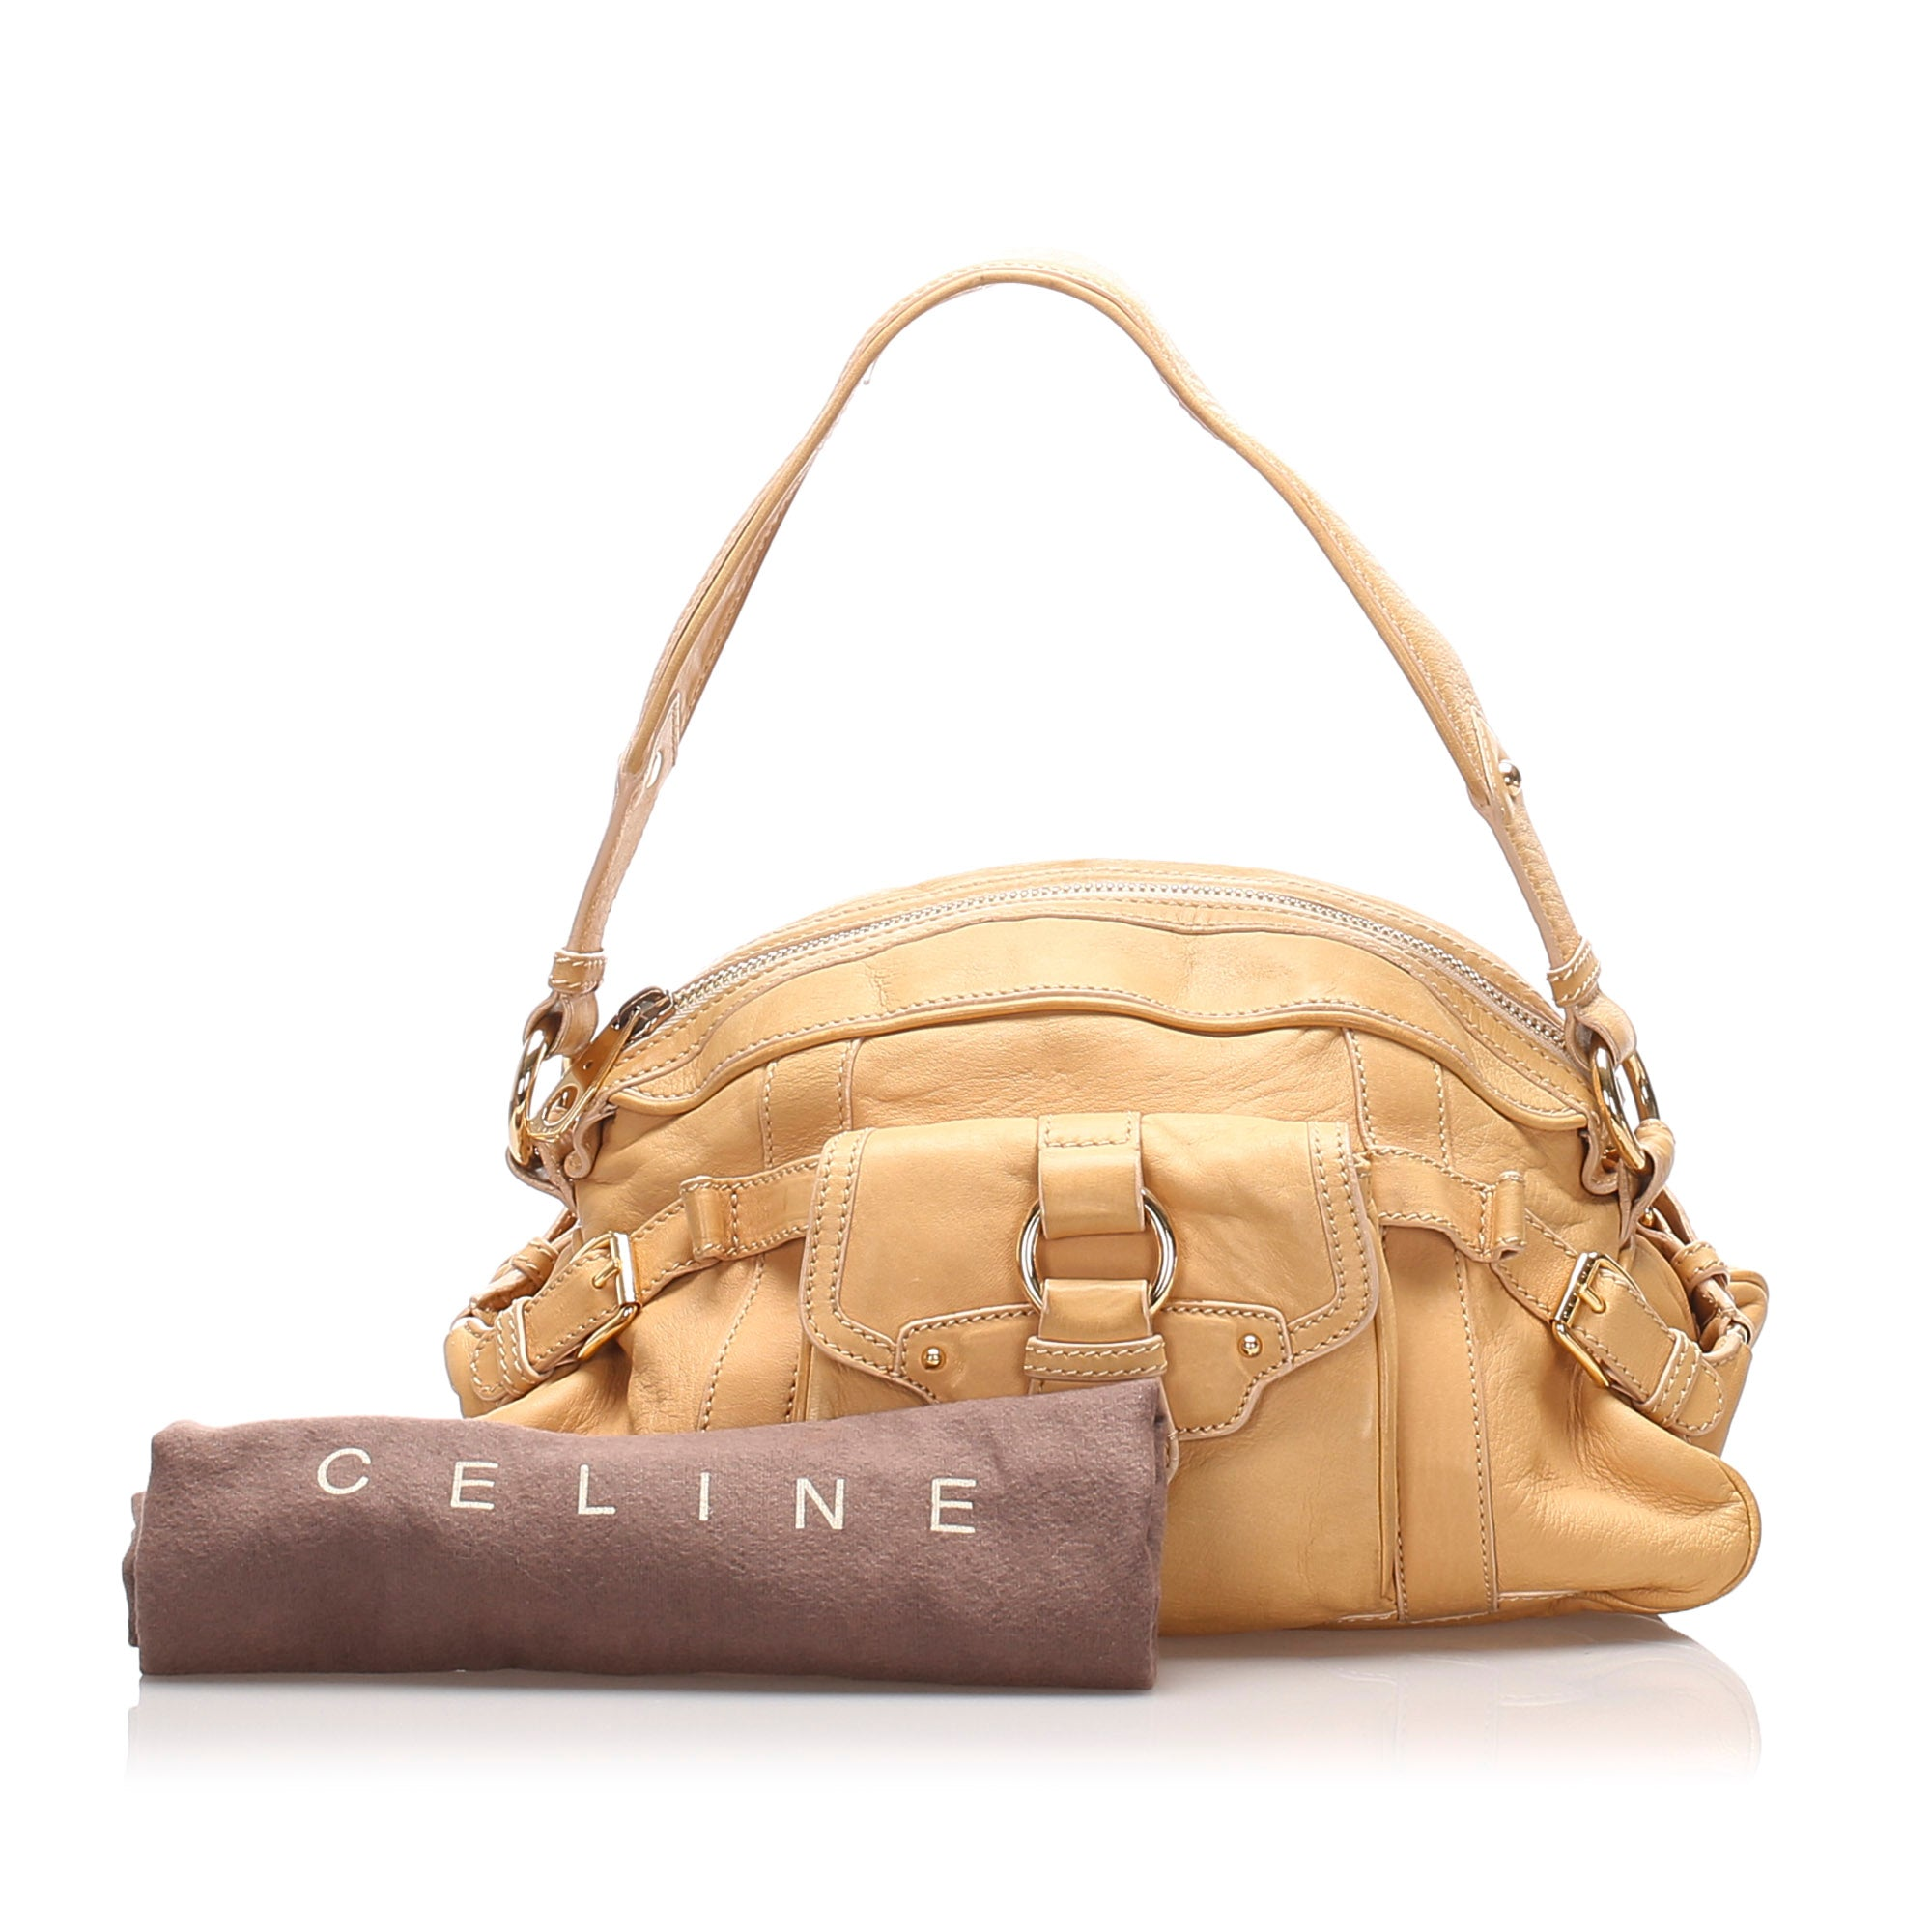 Celine Brown Leather Shoulder Bag